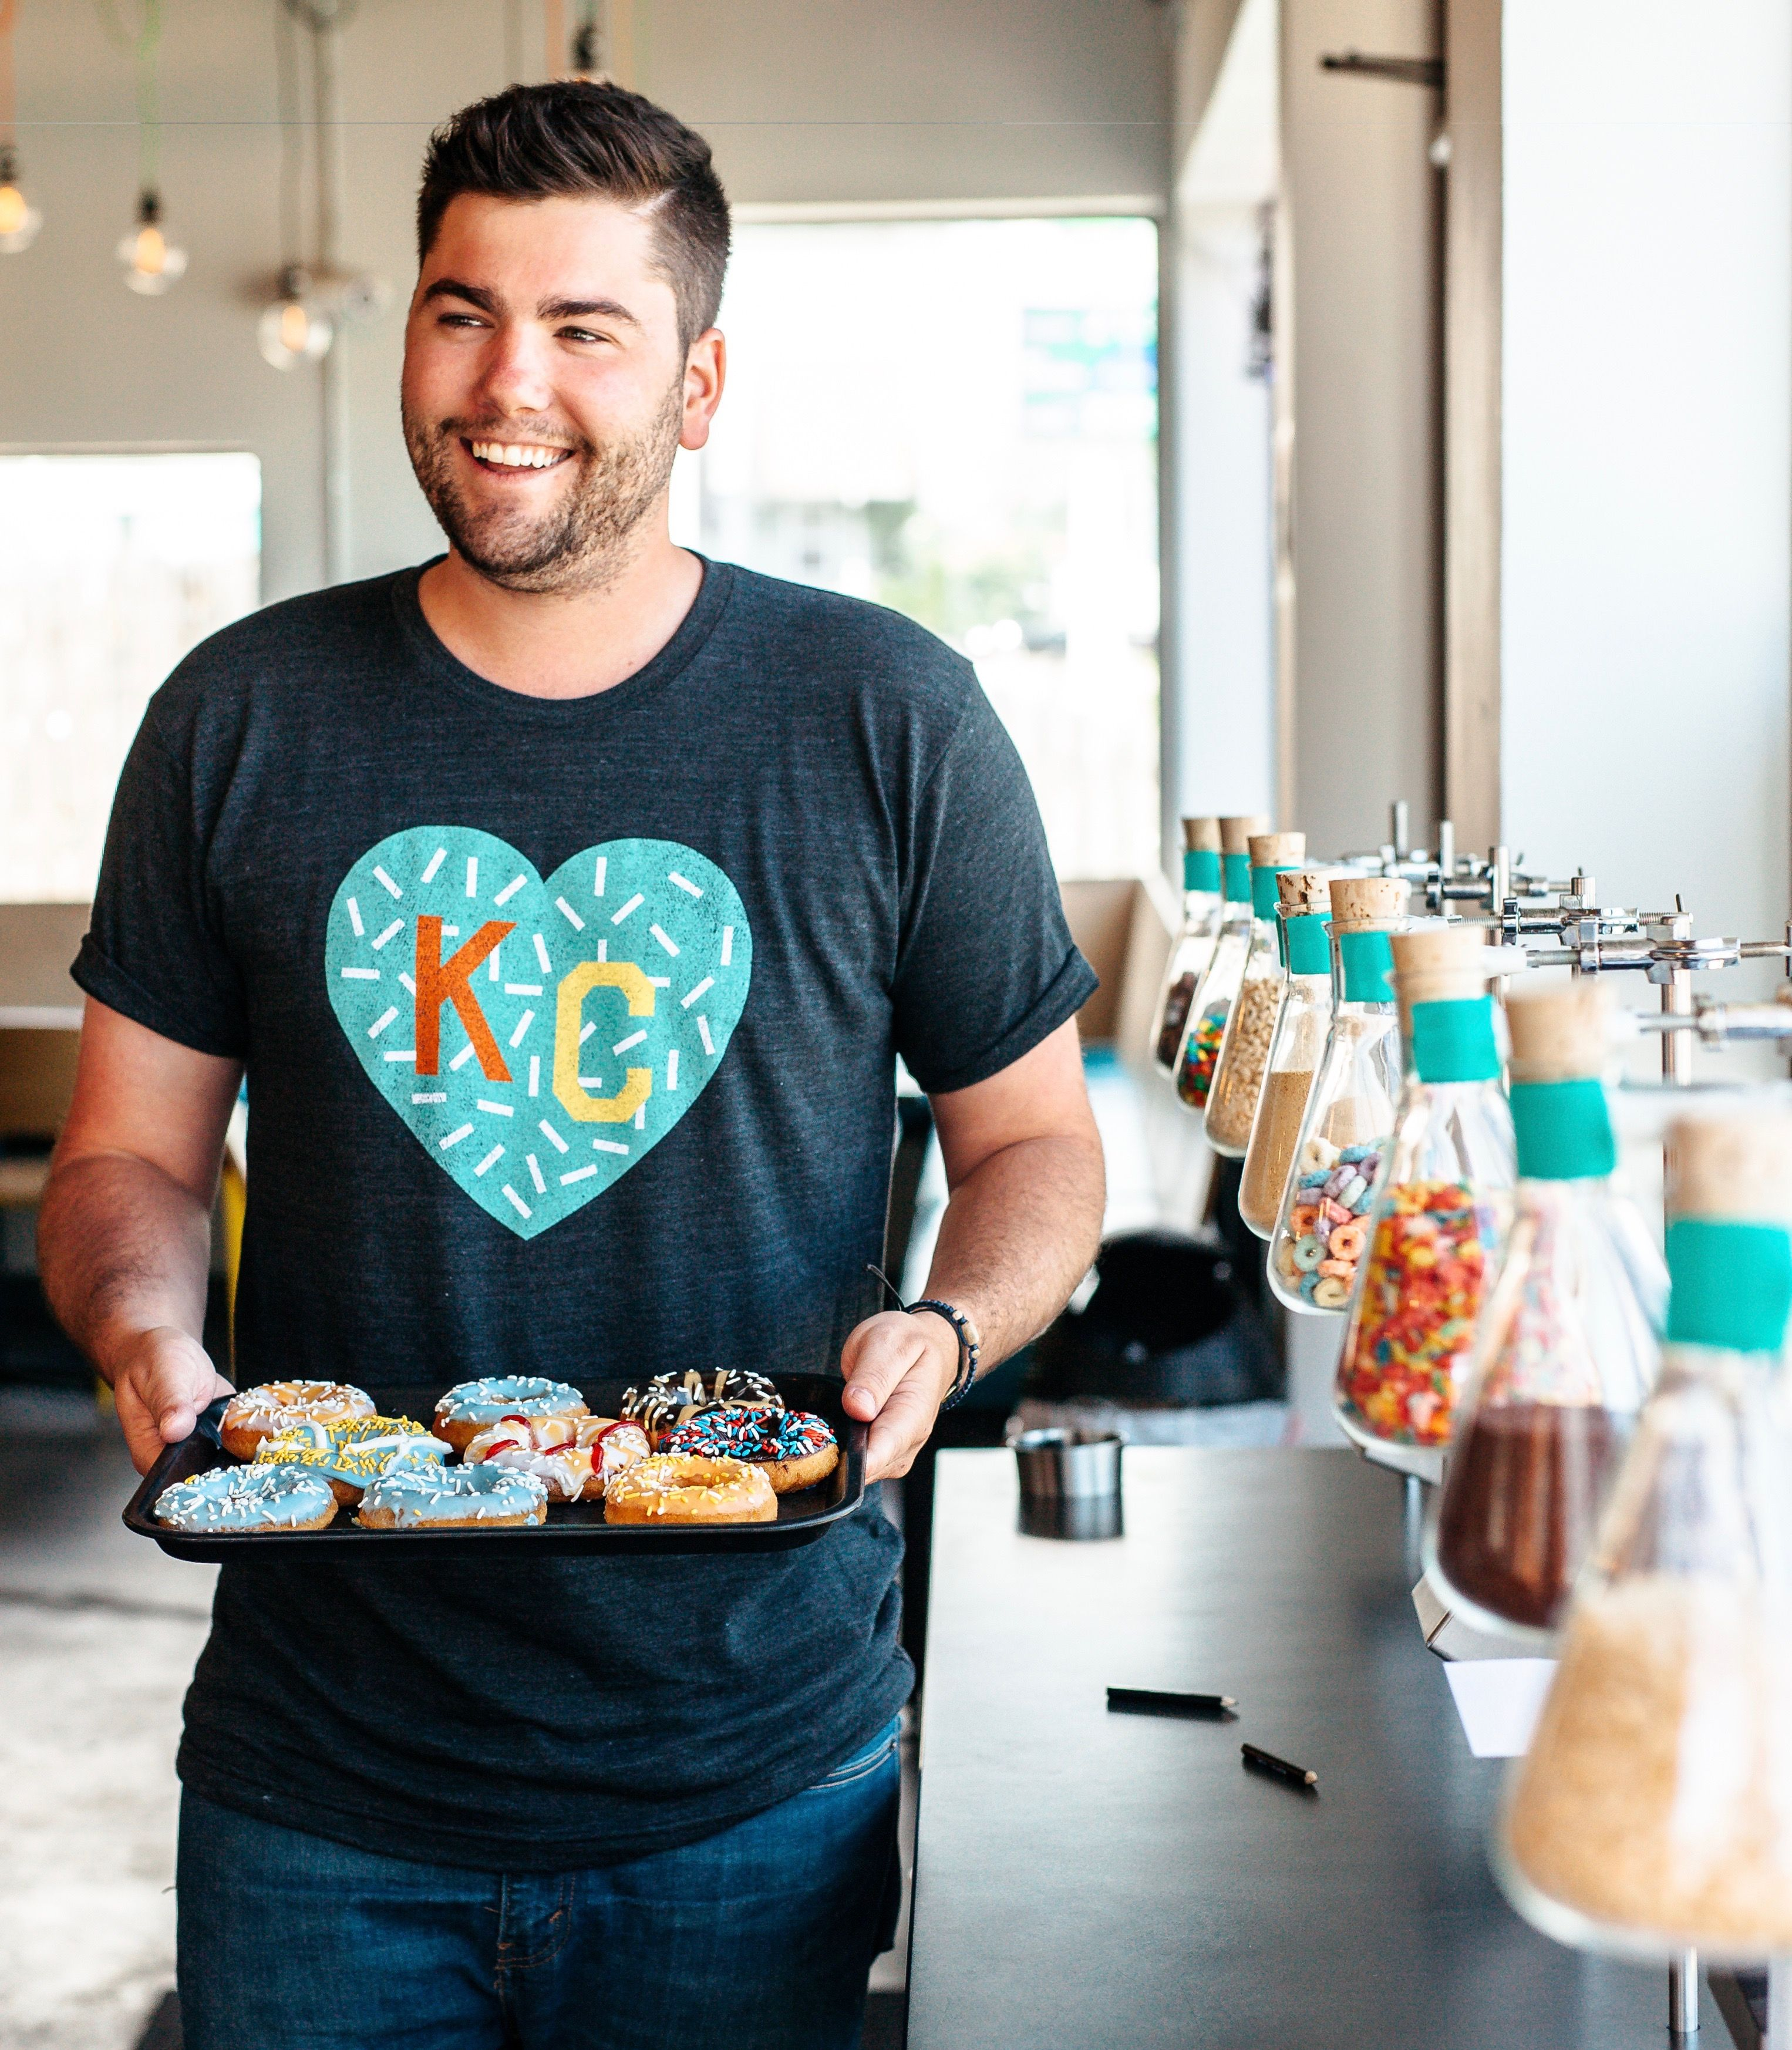 """Here at Charlie Hustle, we're celebrating National Donut Day all month long. This limited edition KC Heart tee is decked out in sprinkles and frosting and is only available for a short time. This product is part of """"The Donutology Collection"""" - Visit Donutology in Westport to see the full lineup!"""